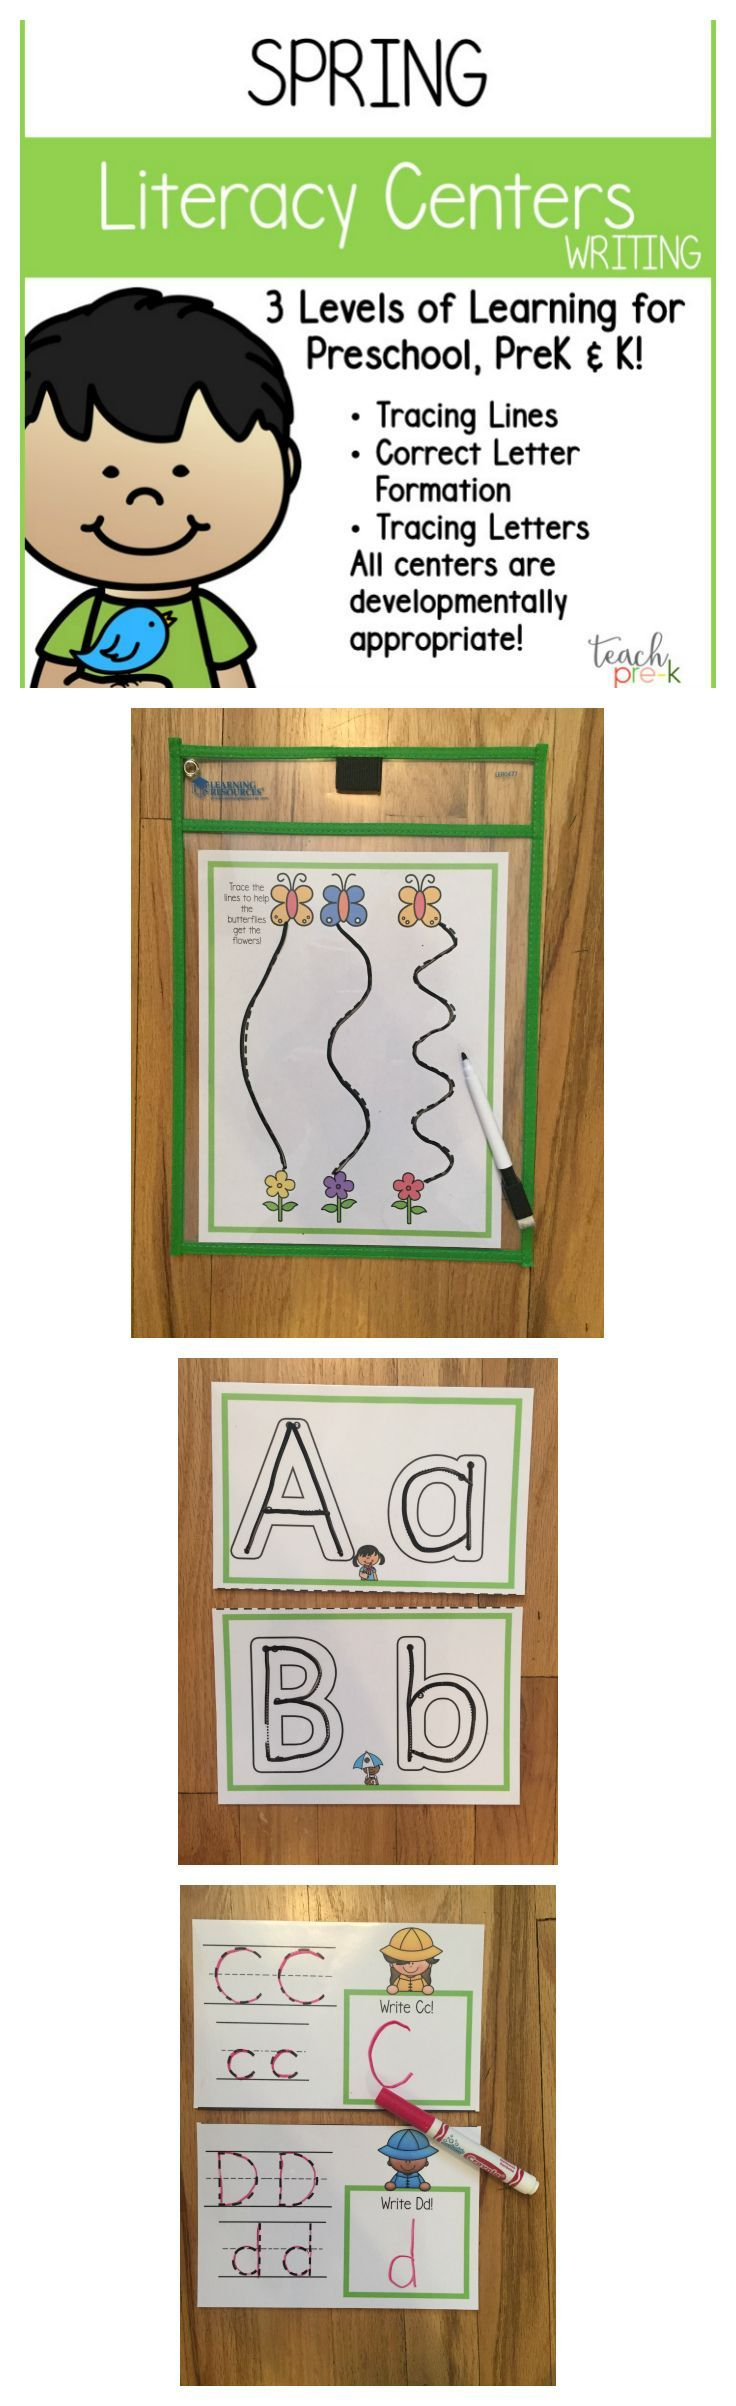 Spring Literacy Centers Writing for Preschool PreK